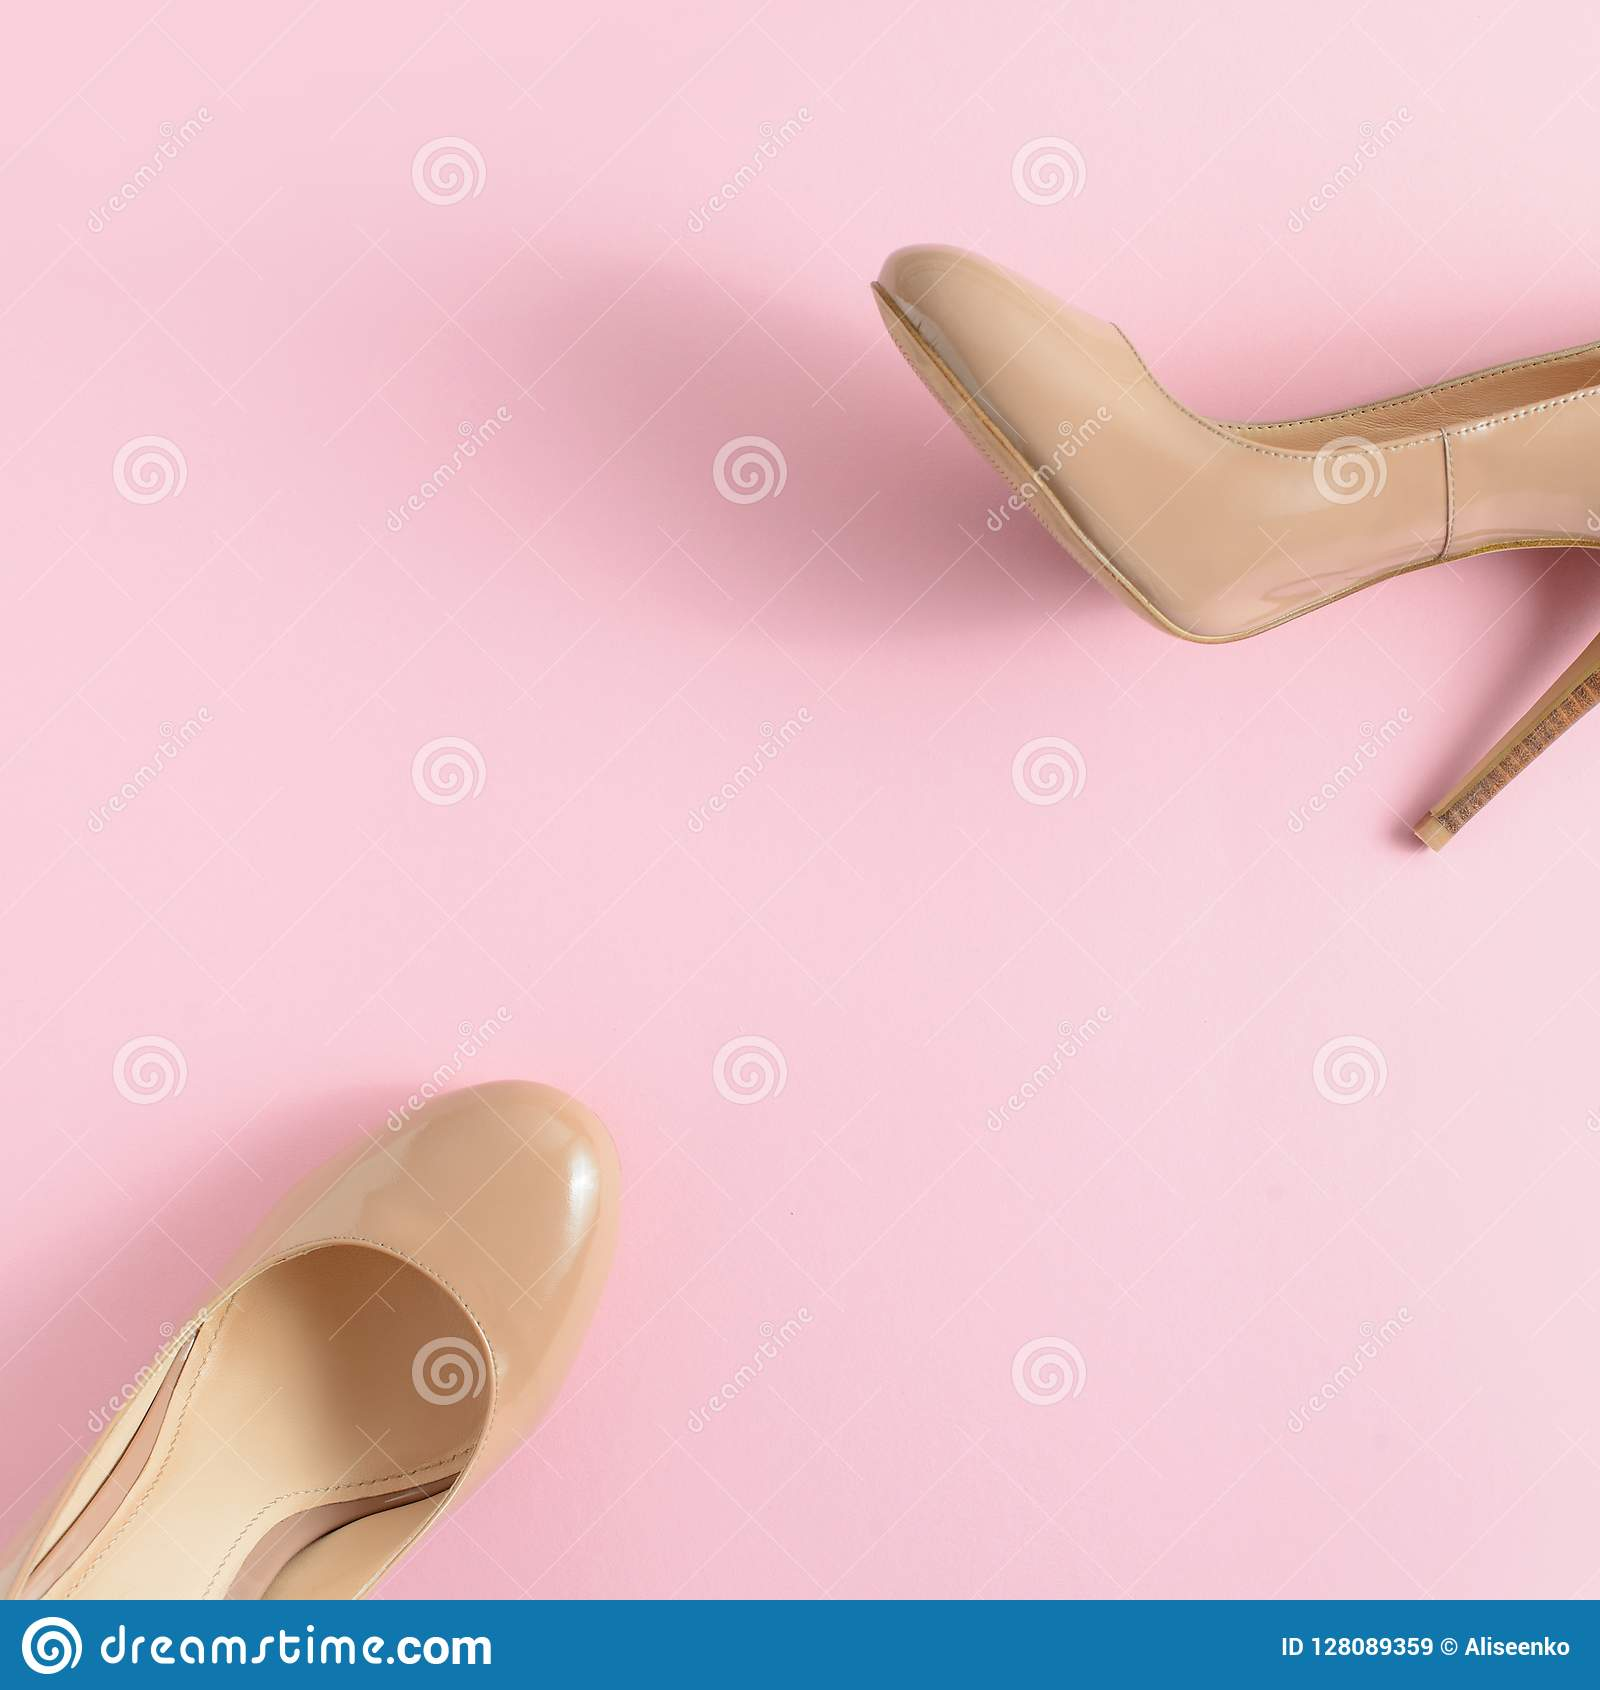 663dd8ca0d6 Beige Women High Heel Shoes On Pink Background. Fashion Blog Look ...